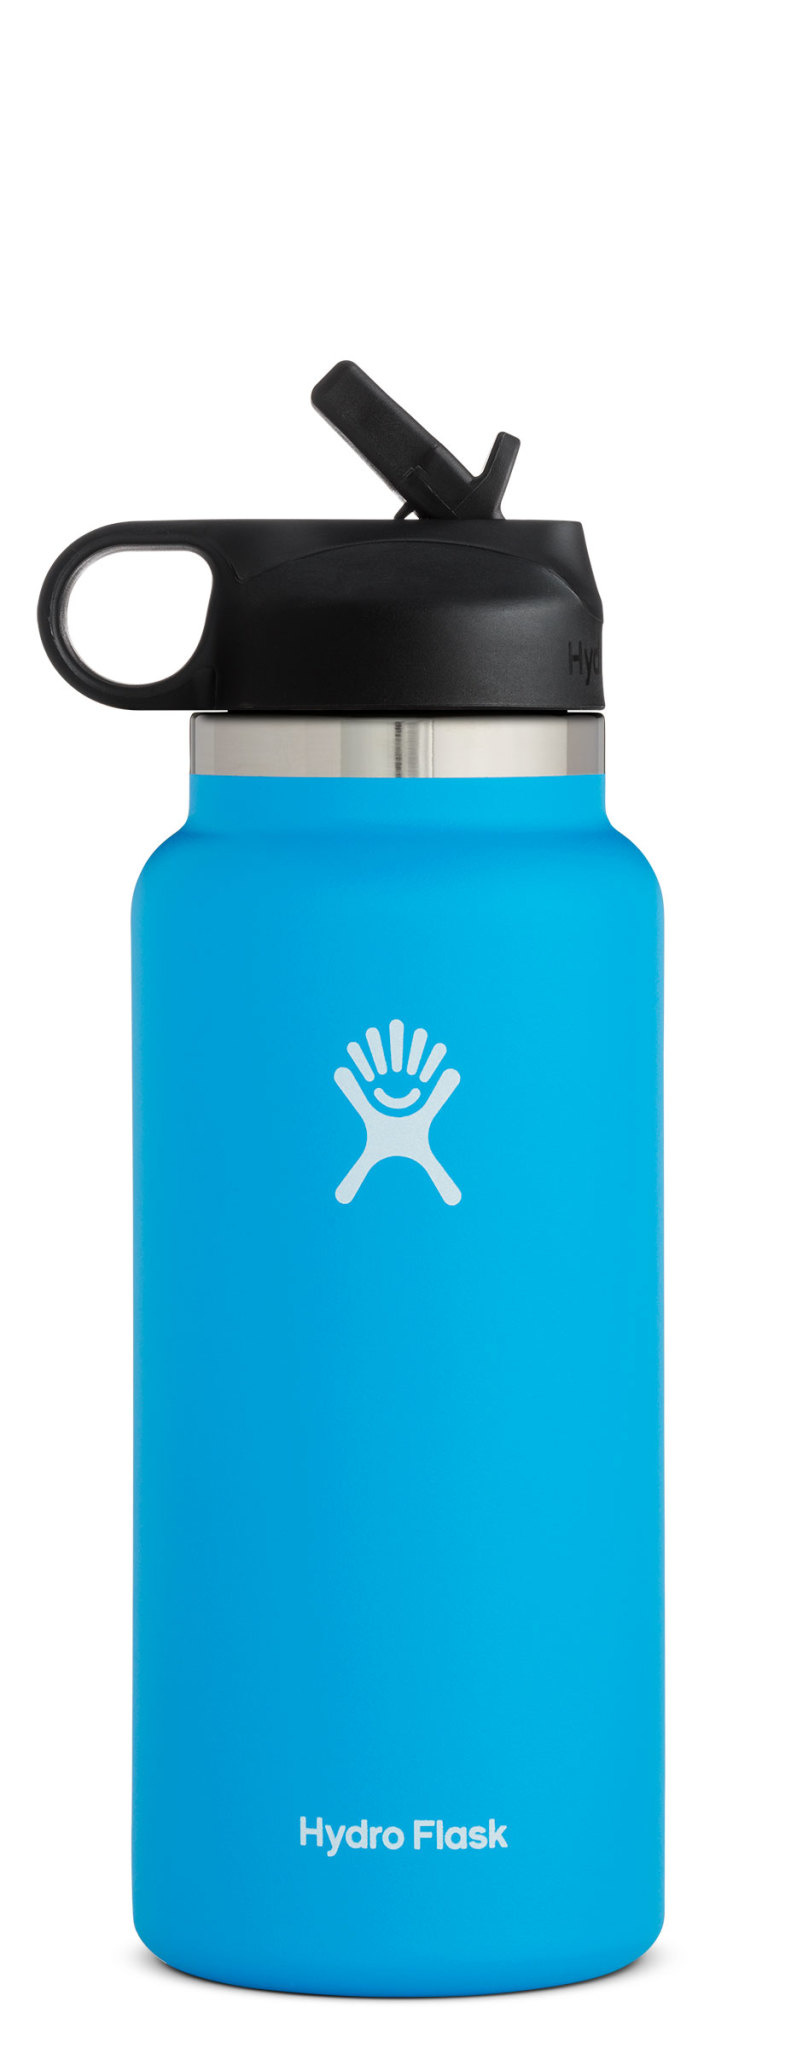 Hydro Flask 32oz Wide Mouth with Straw Lid-10